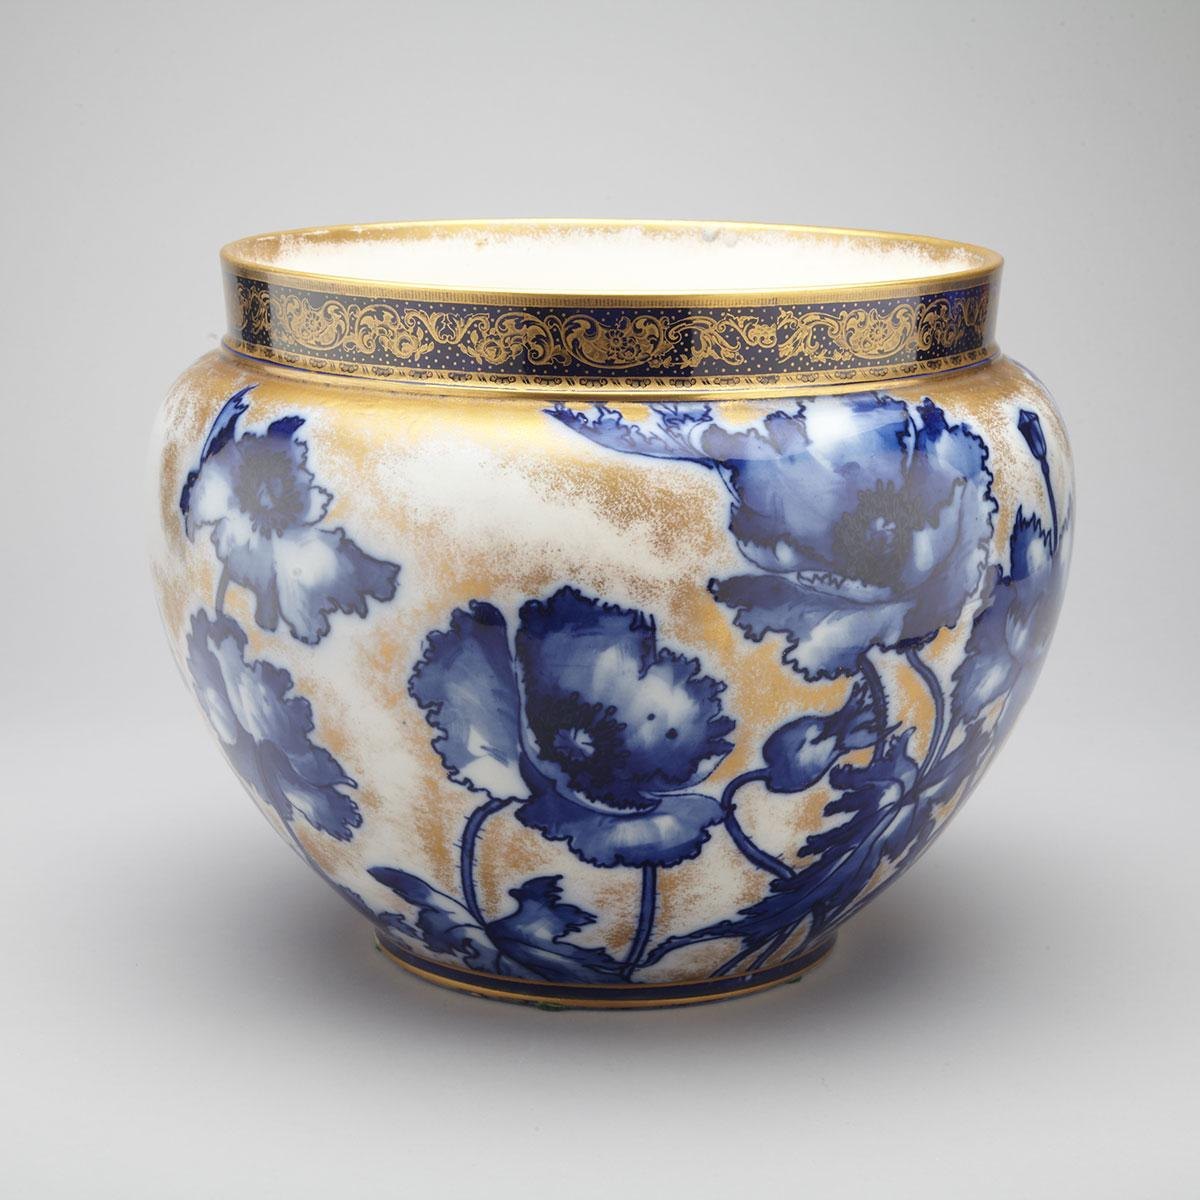 Royal Doulton Blue and Gilt Large Jardinière, c.1900